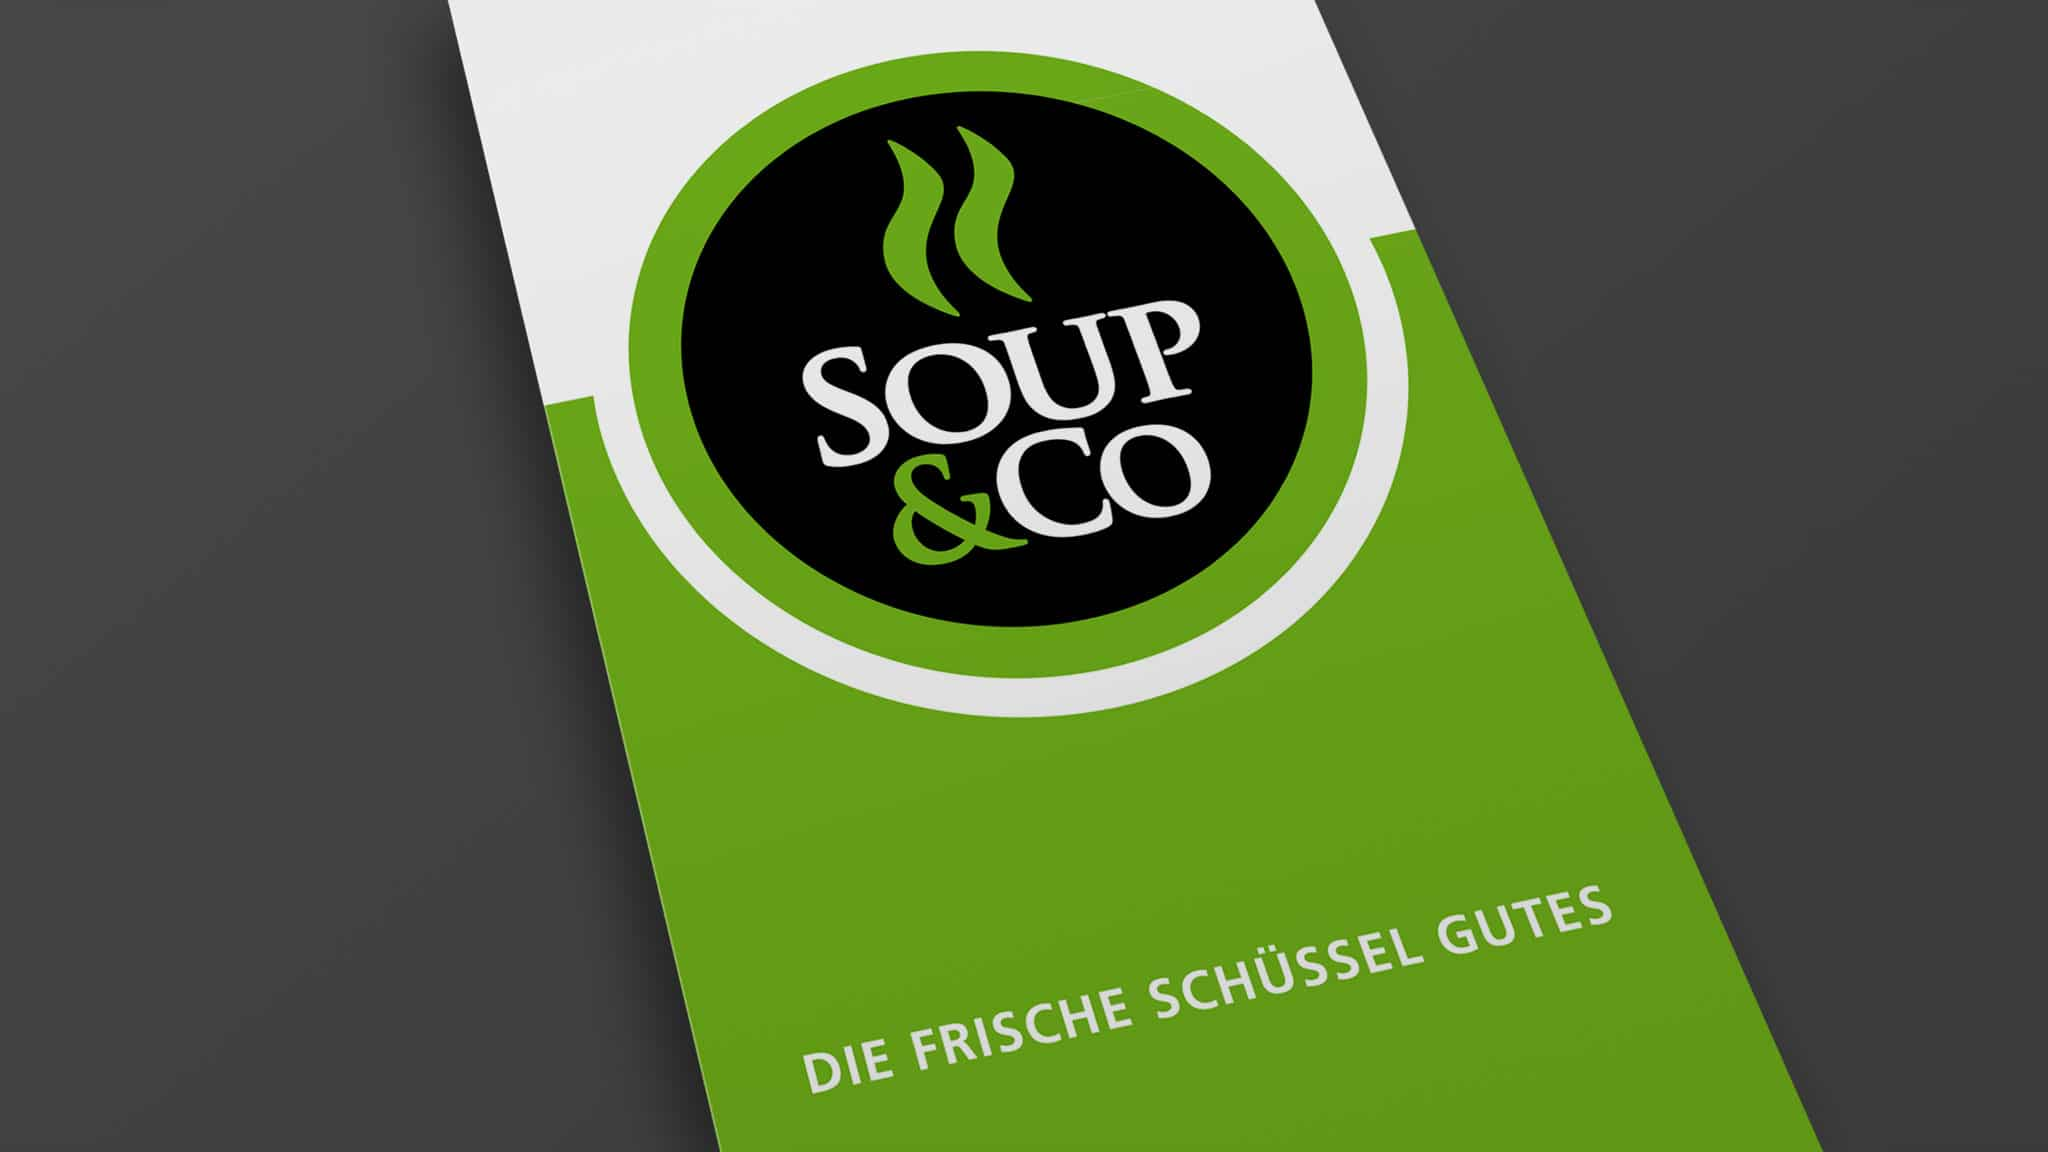 Corporate Design für ein Restaurant